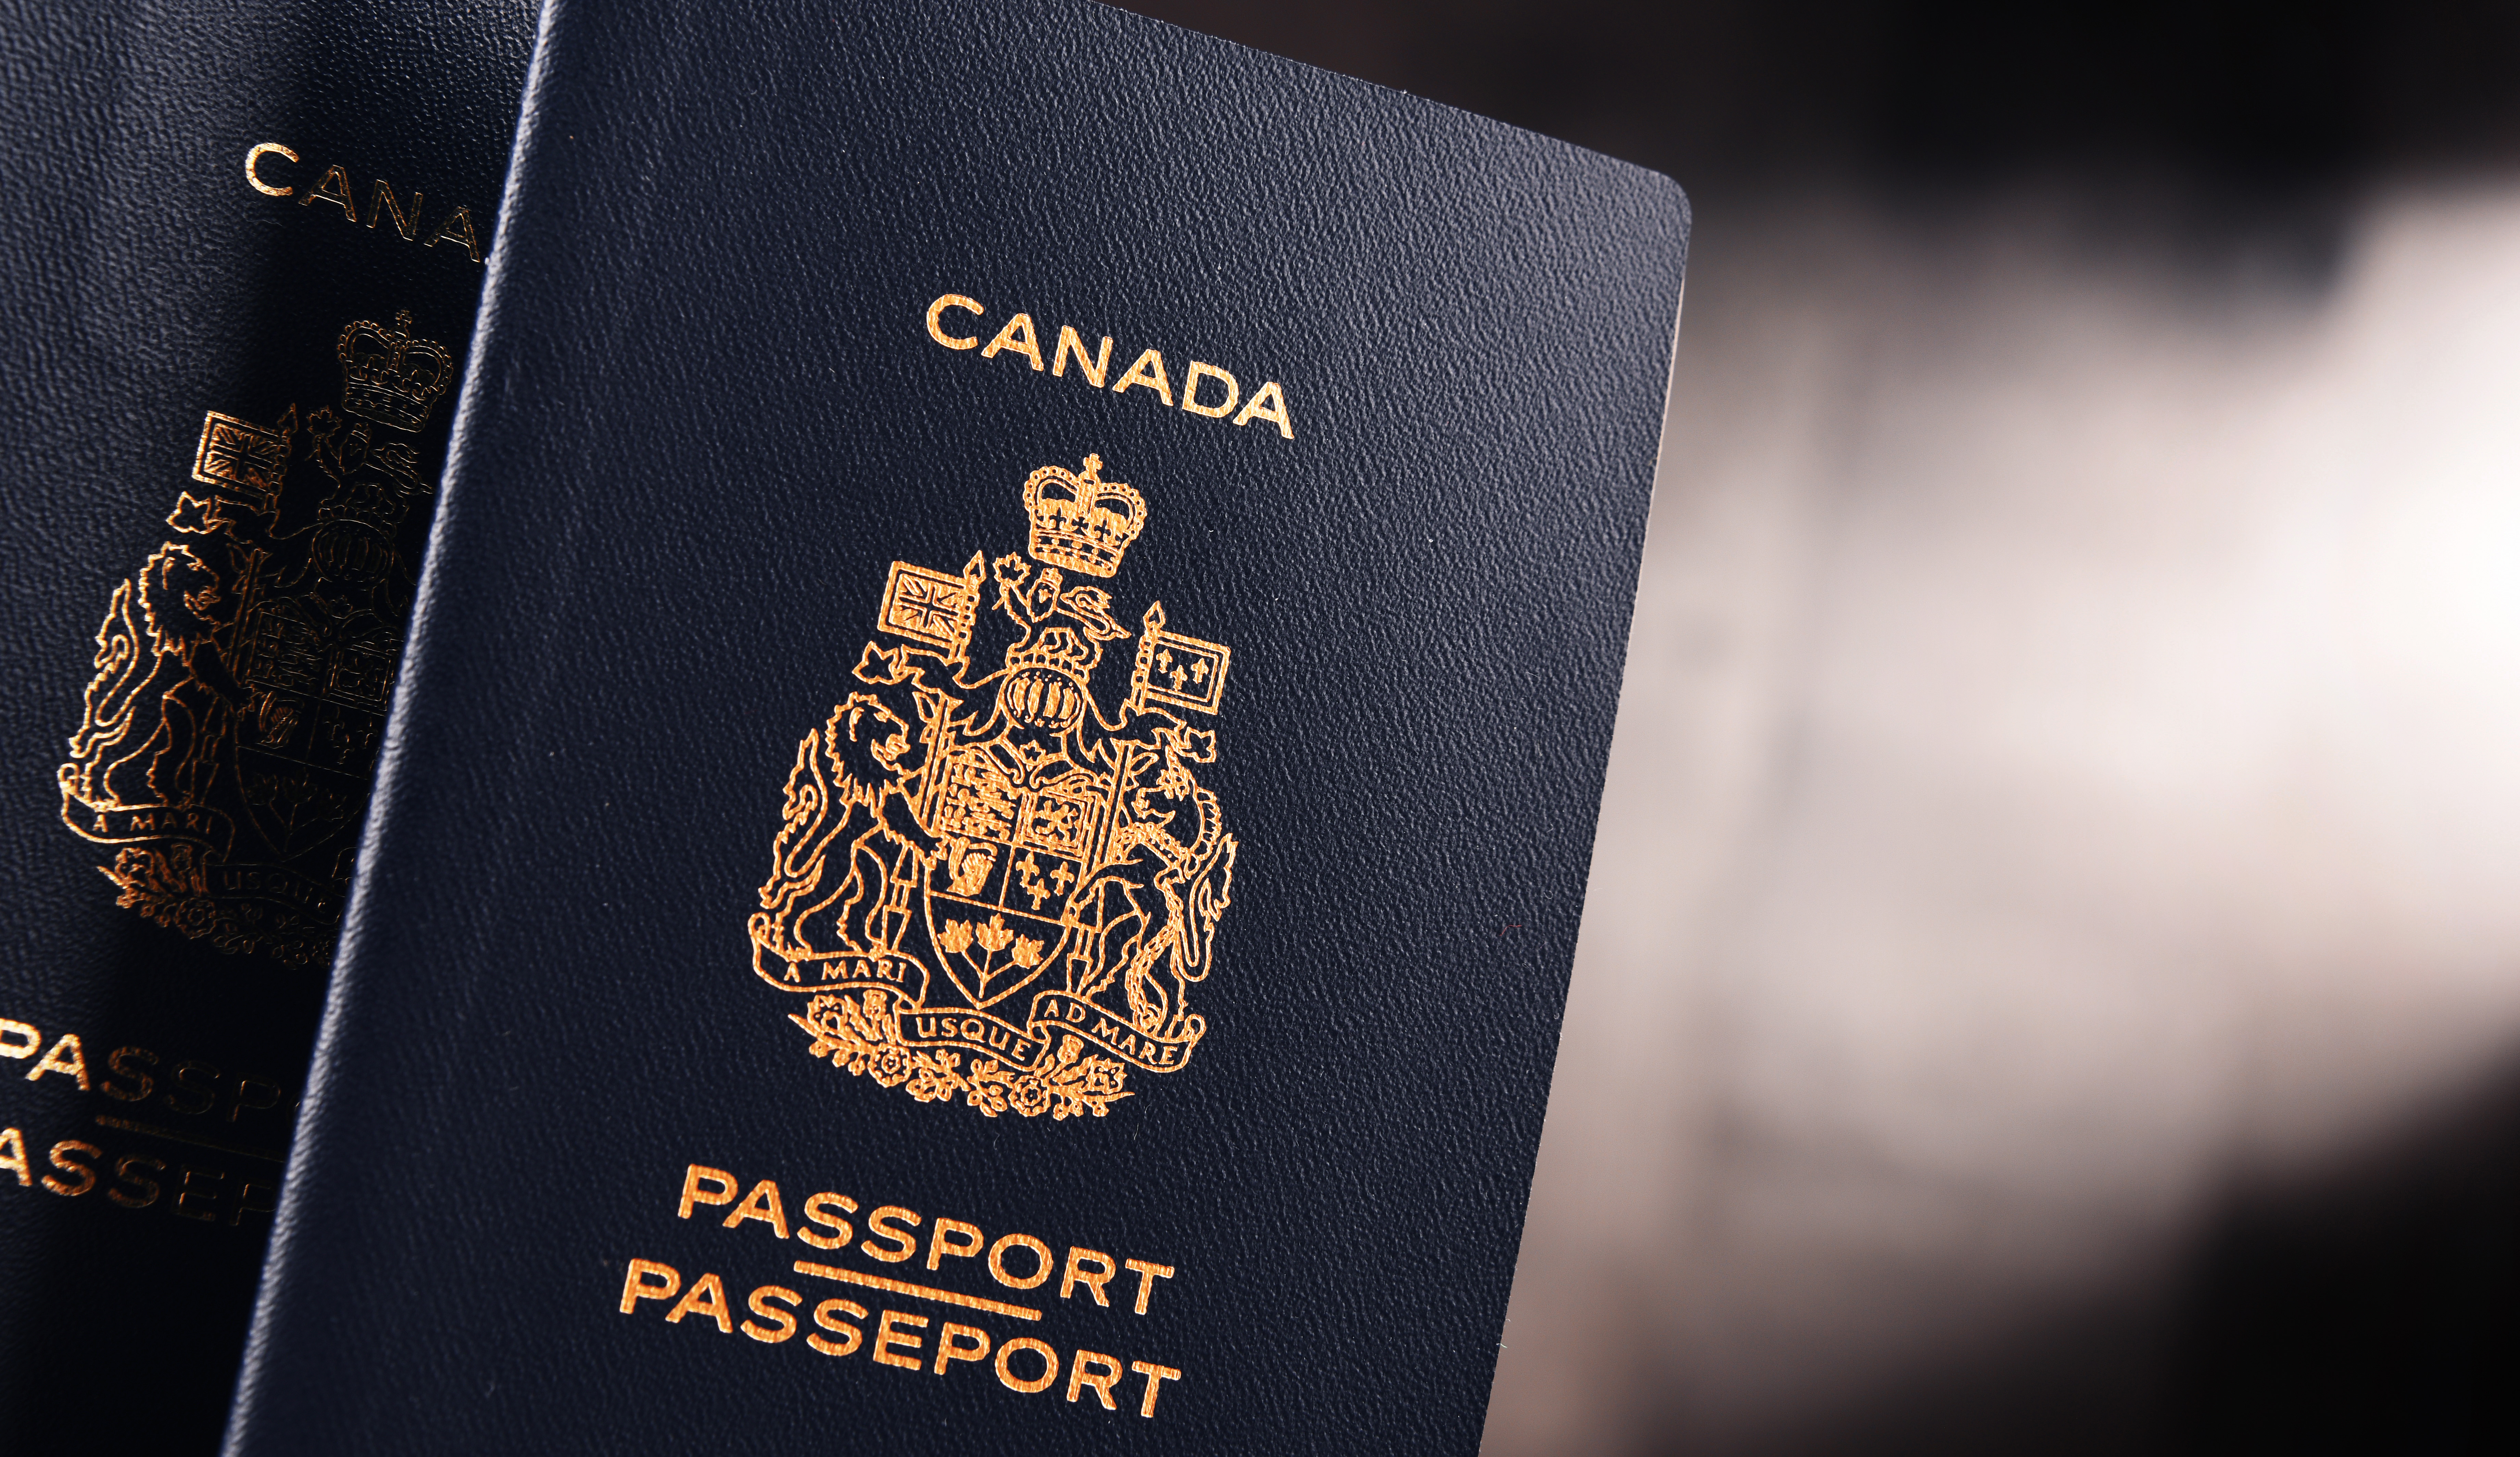 Canadian passport, it can be obtained by self-employed in Canada